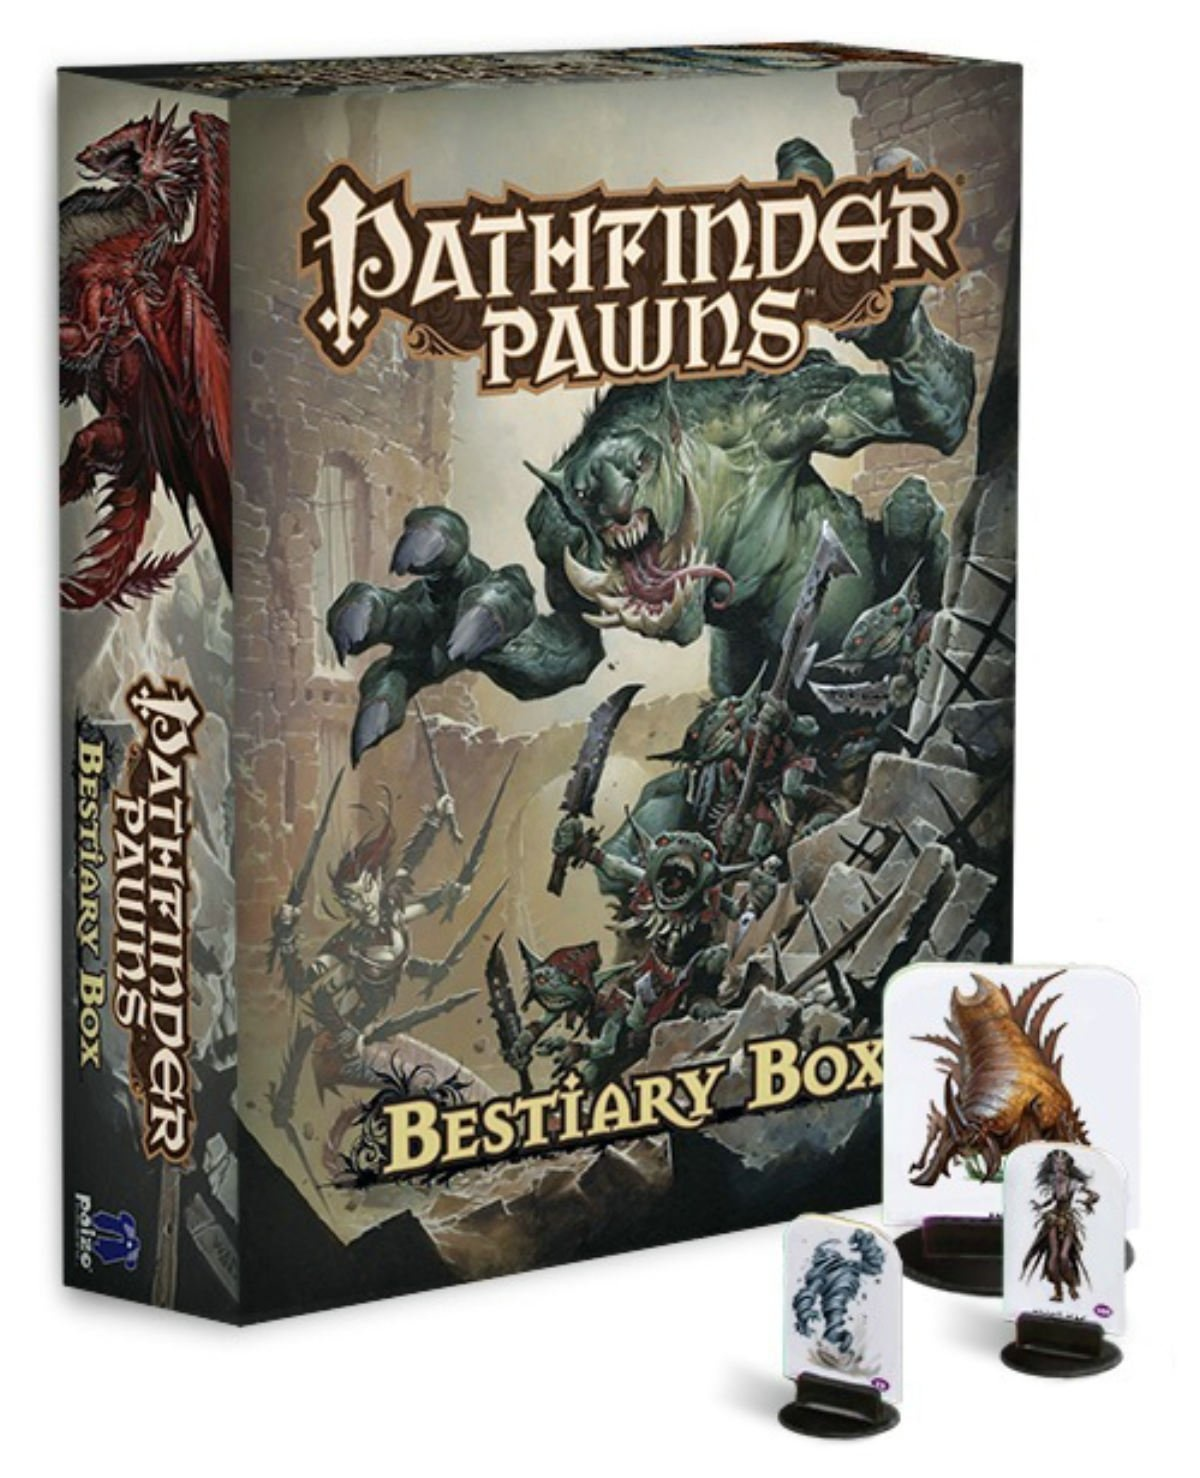 Pathfinder Pawns: Bestiary Box by Paizo Publishing, ISBN: 9781601255617